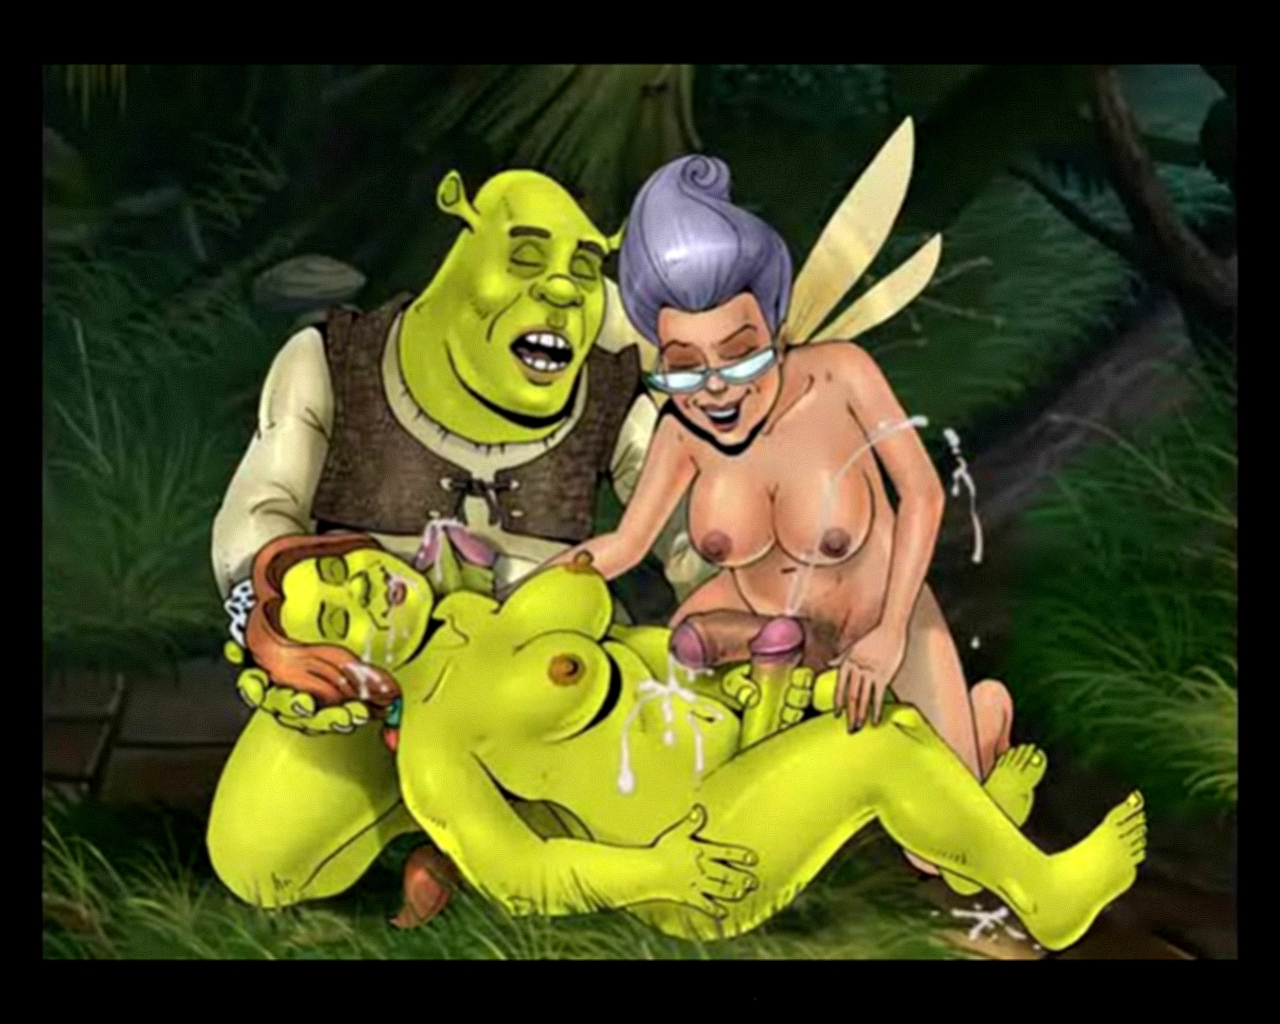 Fairy godmother shrek hentii porn xxx image